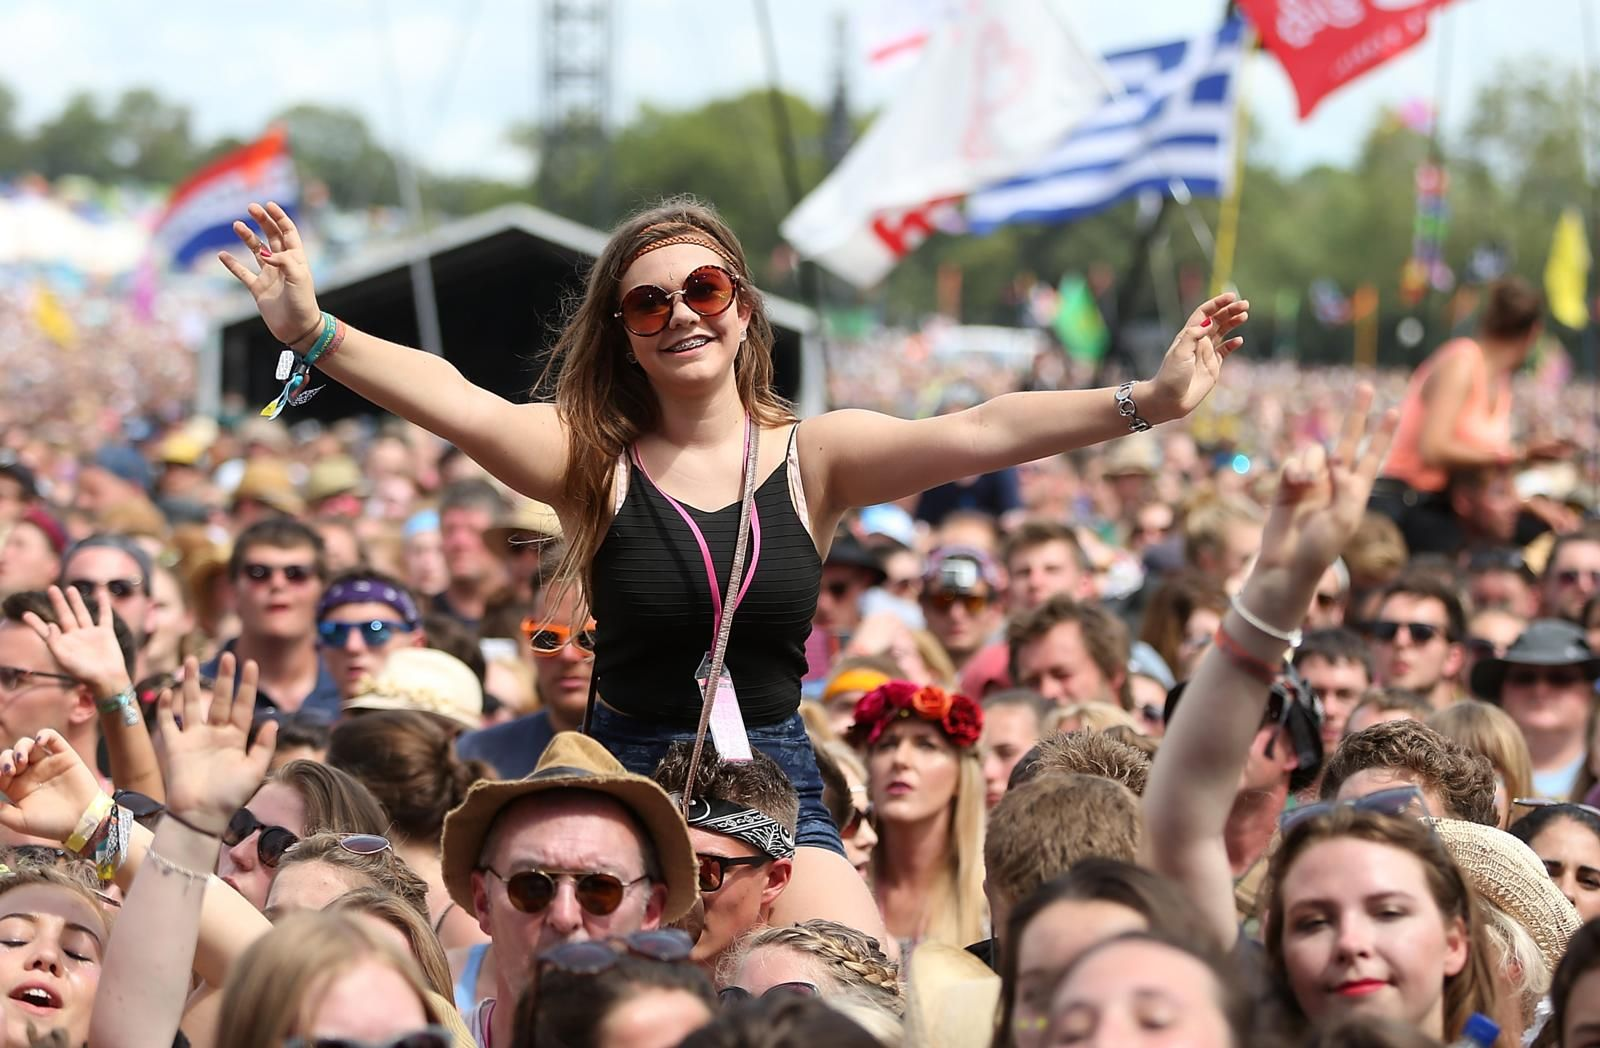 festival republic and glastonbury festival essay The glastonbury festival and promoters festival republic are to end their partnership after more than ten years, it has been announced festival republic, led by melvin benn, runs other music.